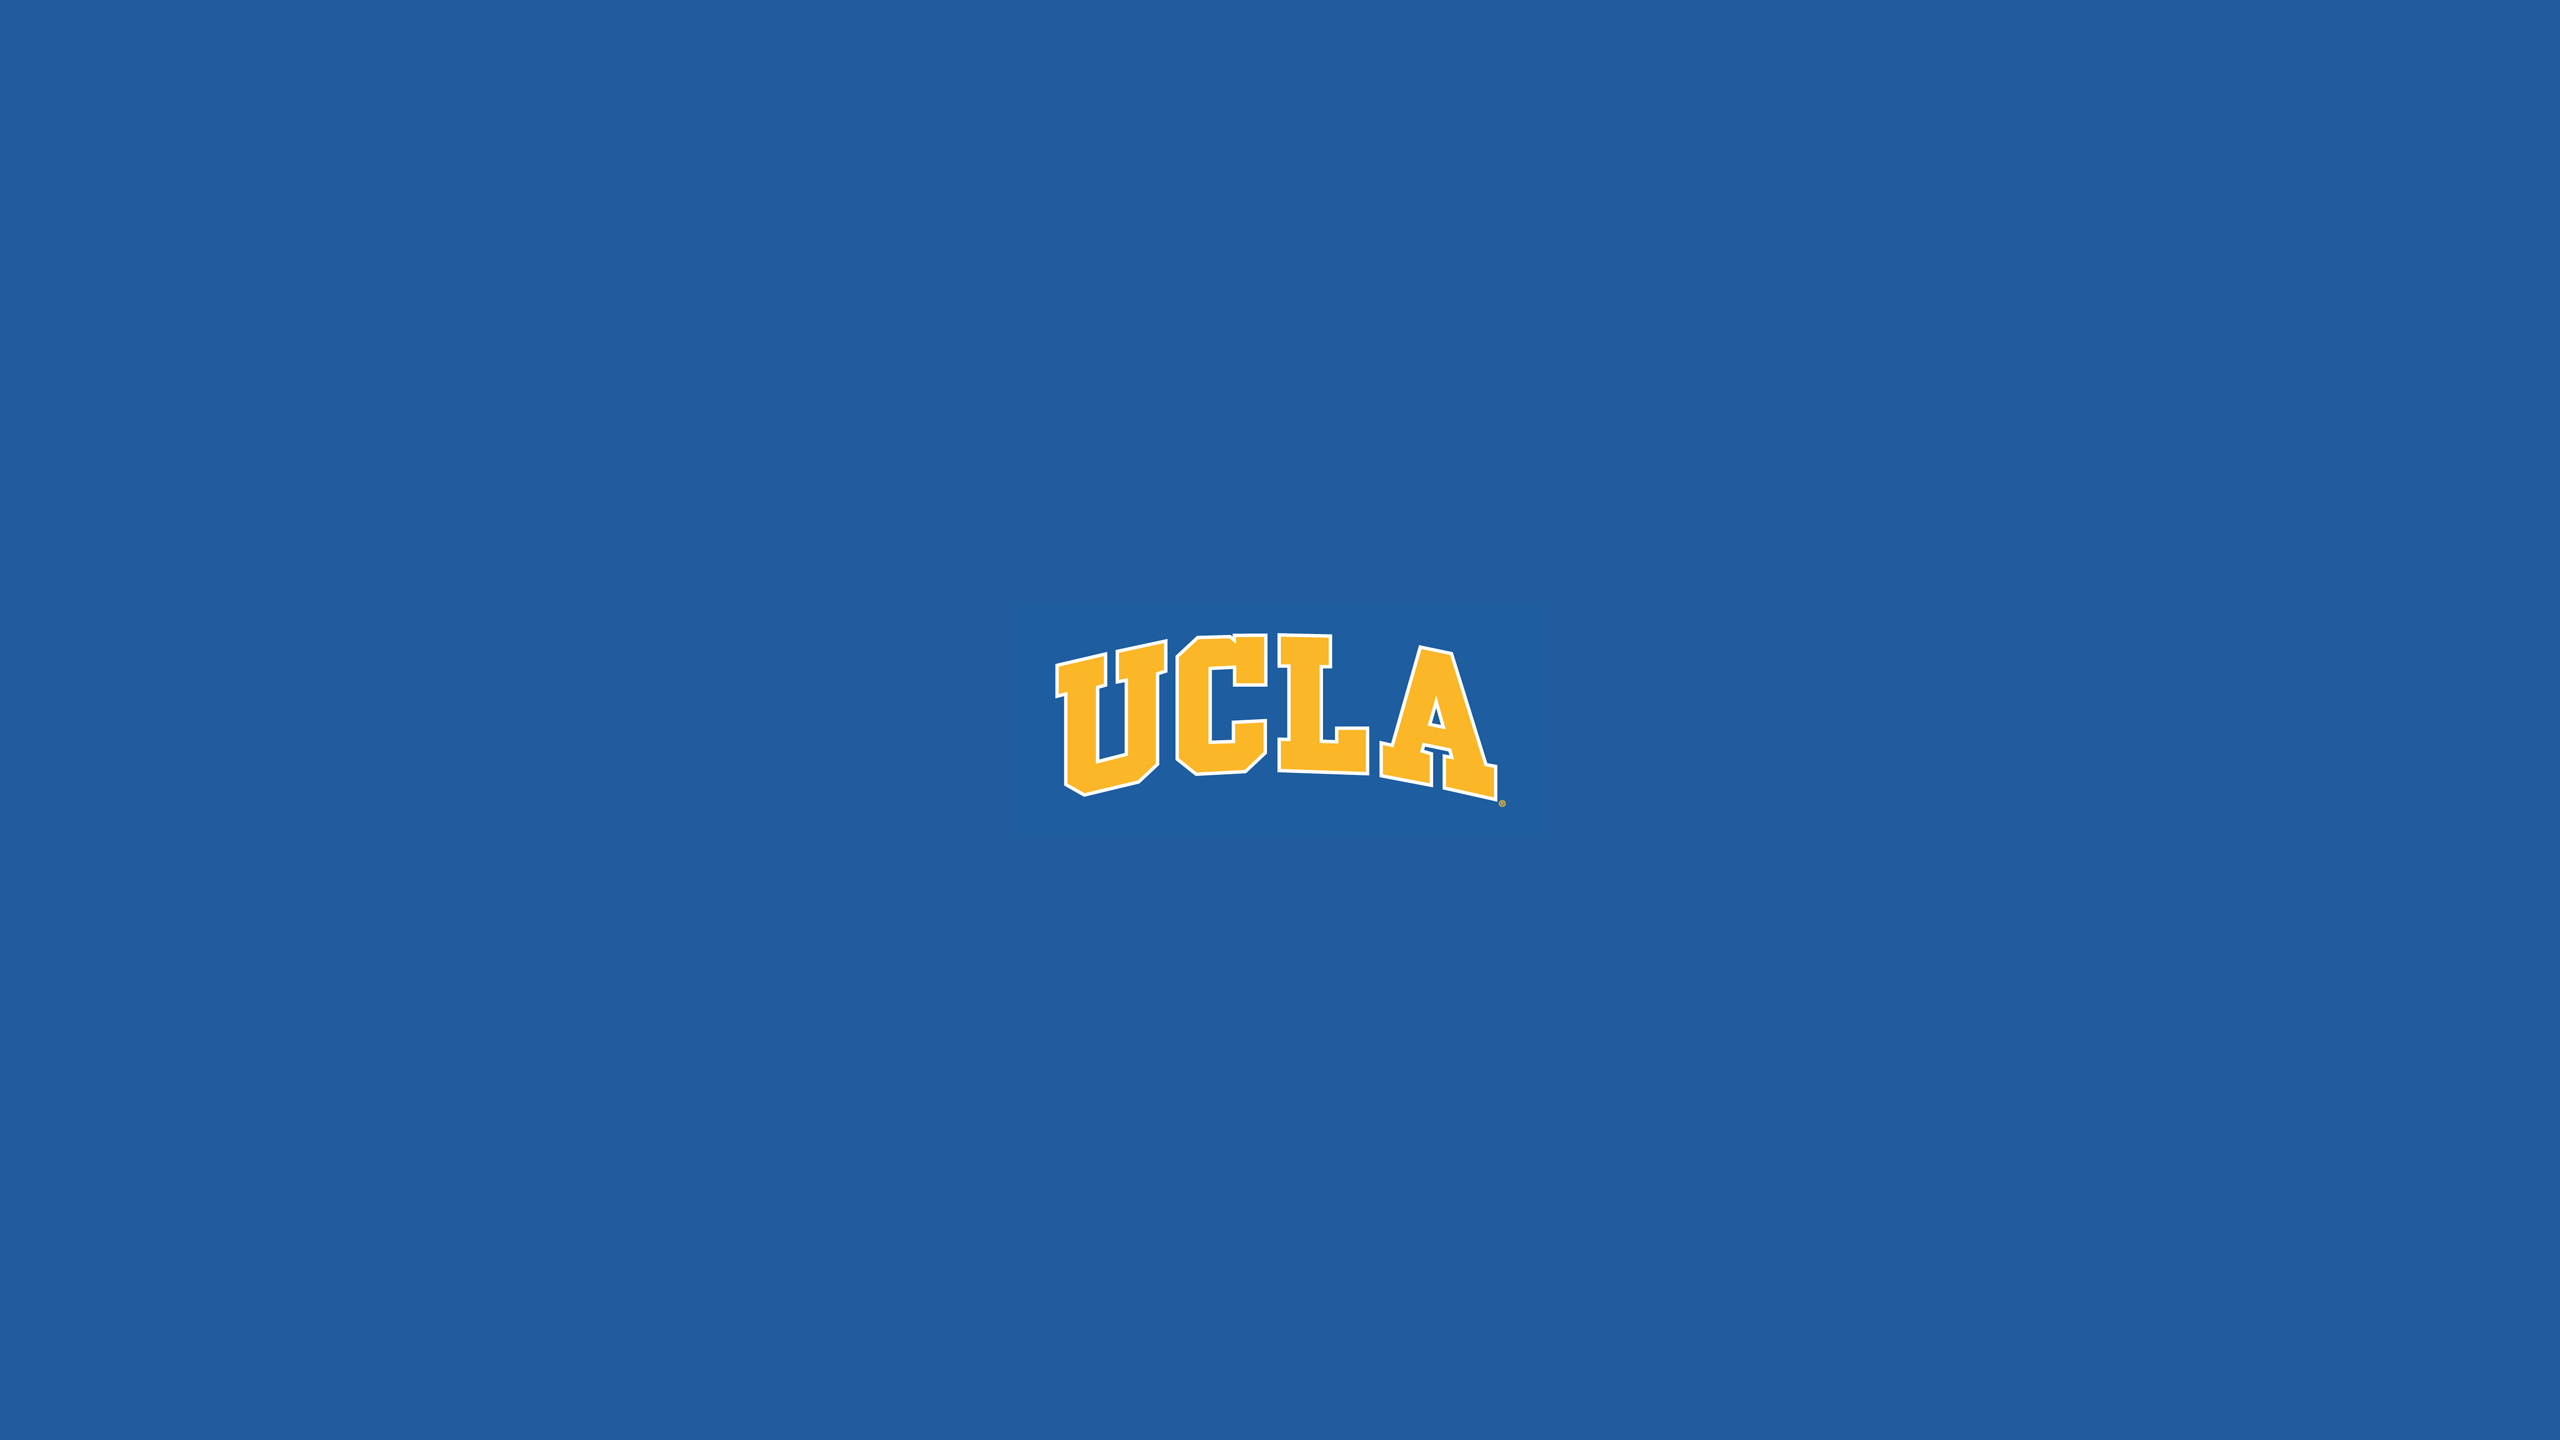 ucla dating site It's the end of 2016, and the two most popular dating apps – bumble and tinder – have released some and ucla coming in 3rd us job hunting service glassdoor, which is best known for providing insight into company.